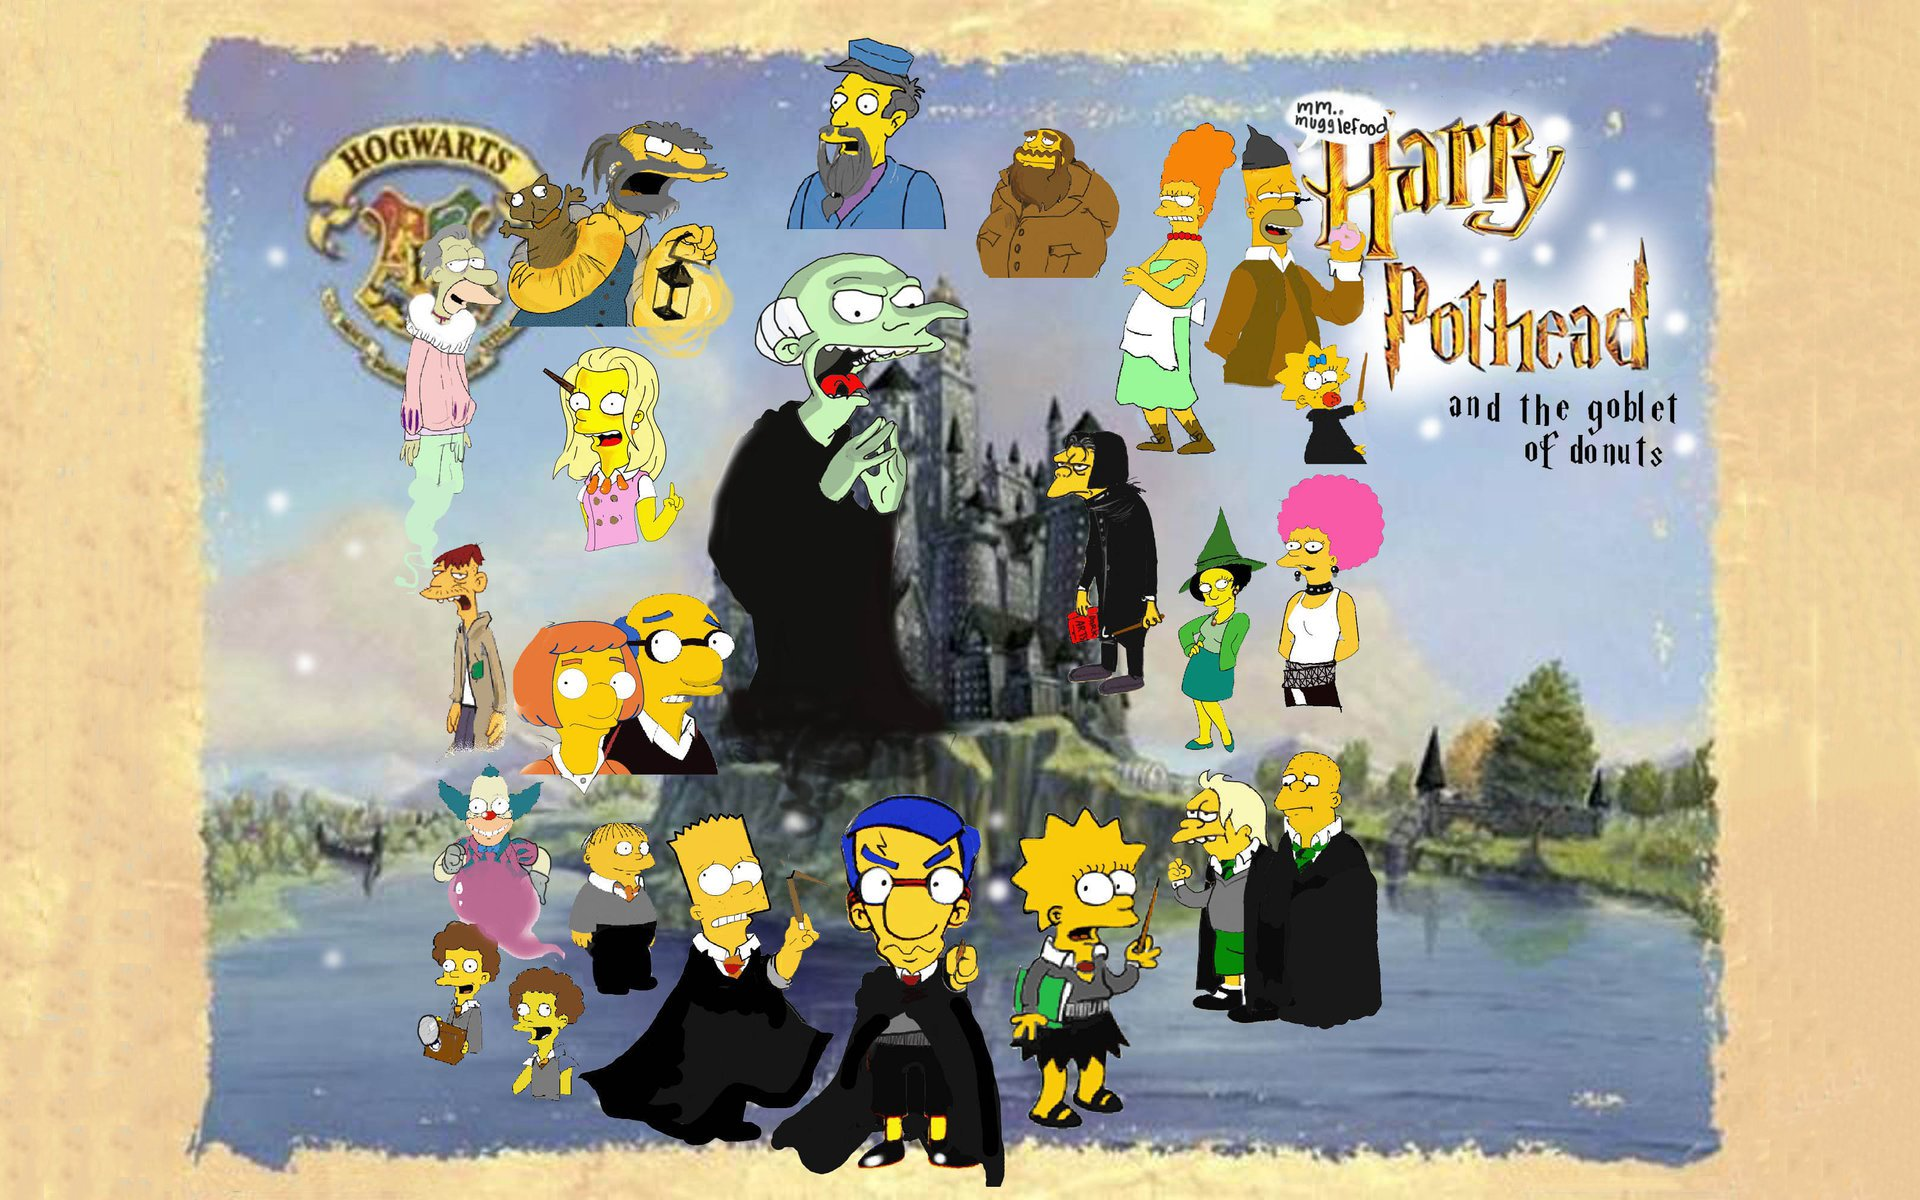 Homer Simpson Harry Potter The Simpsons Bart Lisa Mr Burns Marge Ralph Wiggum Krusty Clown Maggie Crossovers Seymour